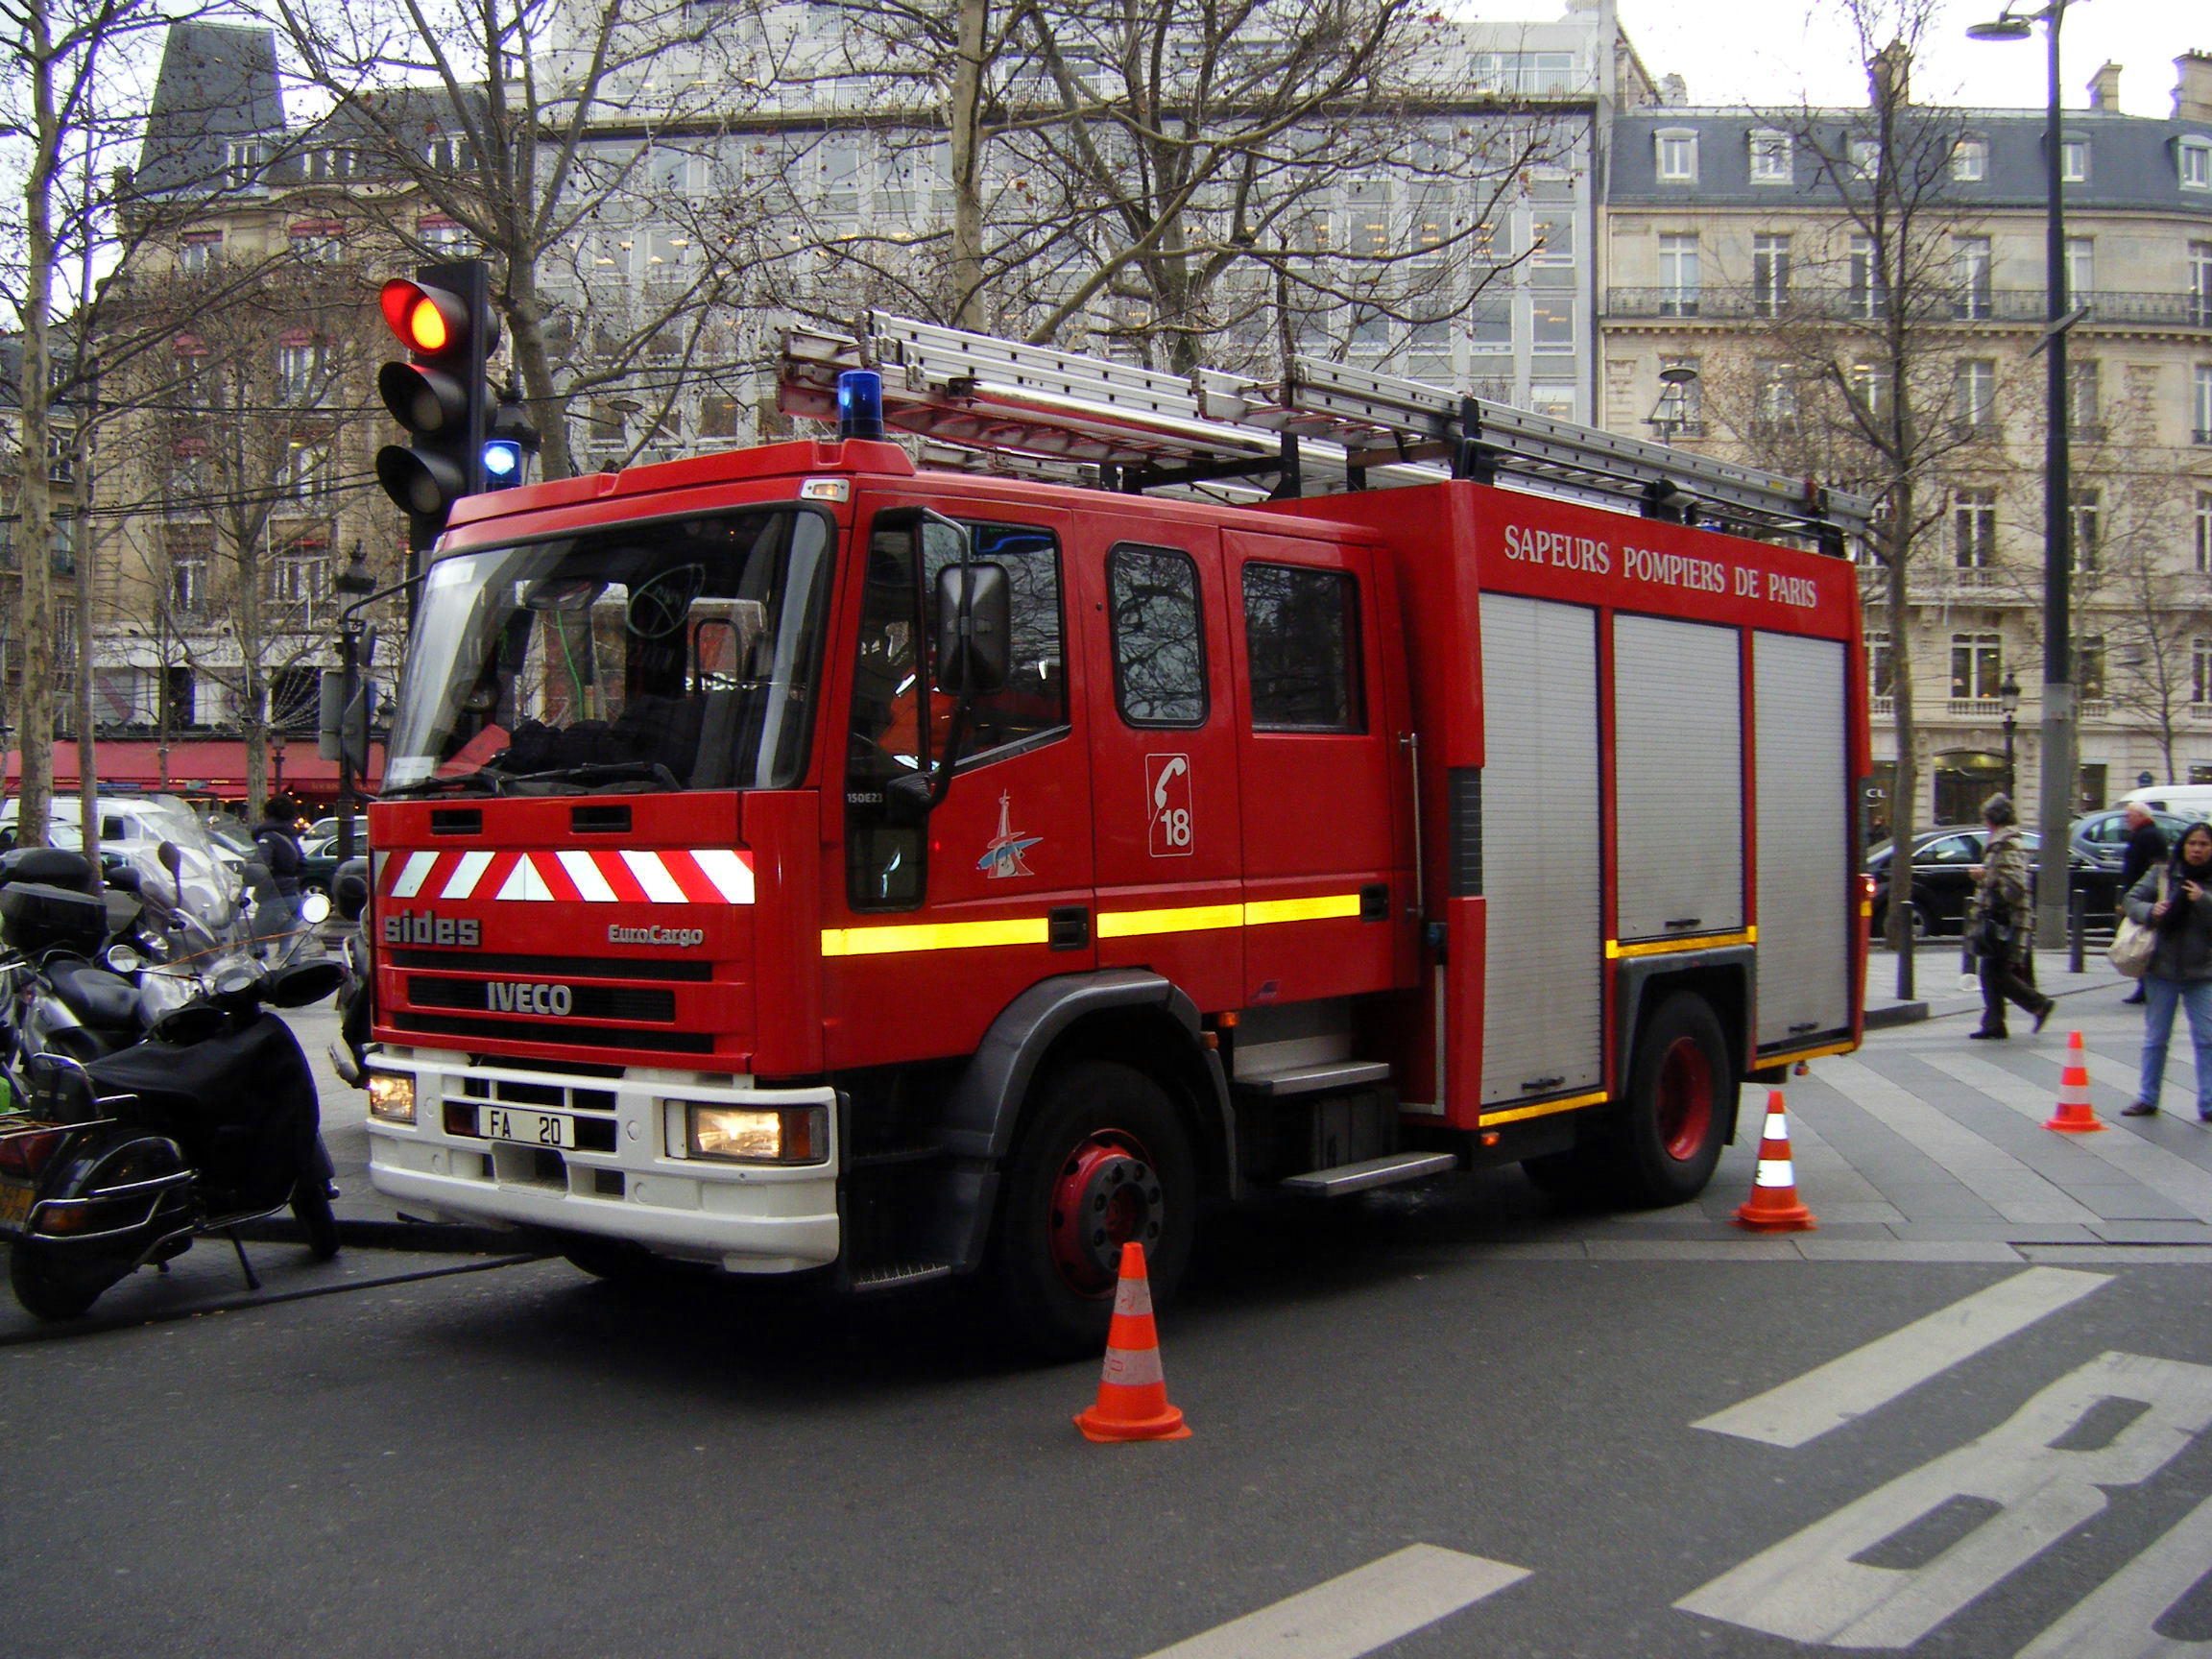 Paris fire brigade military wiki fandom powered by wikia - Camion de pompier image ...